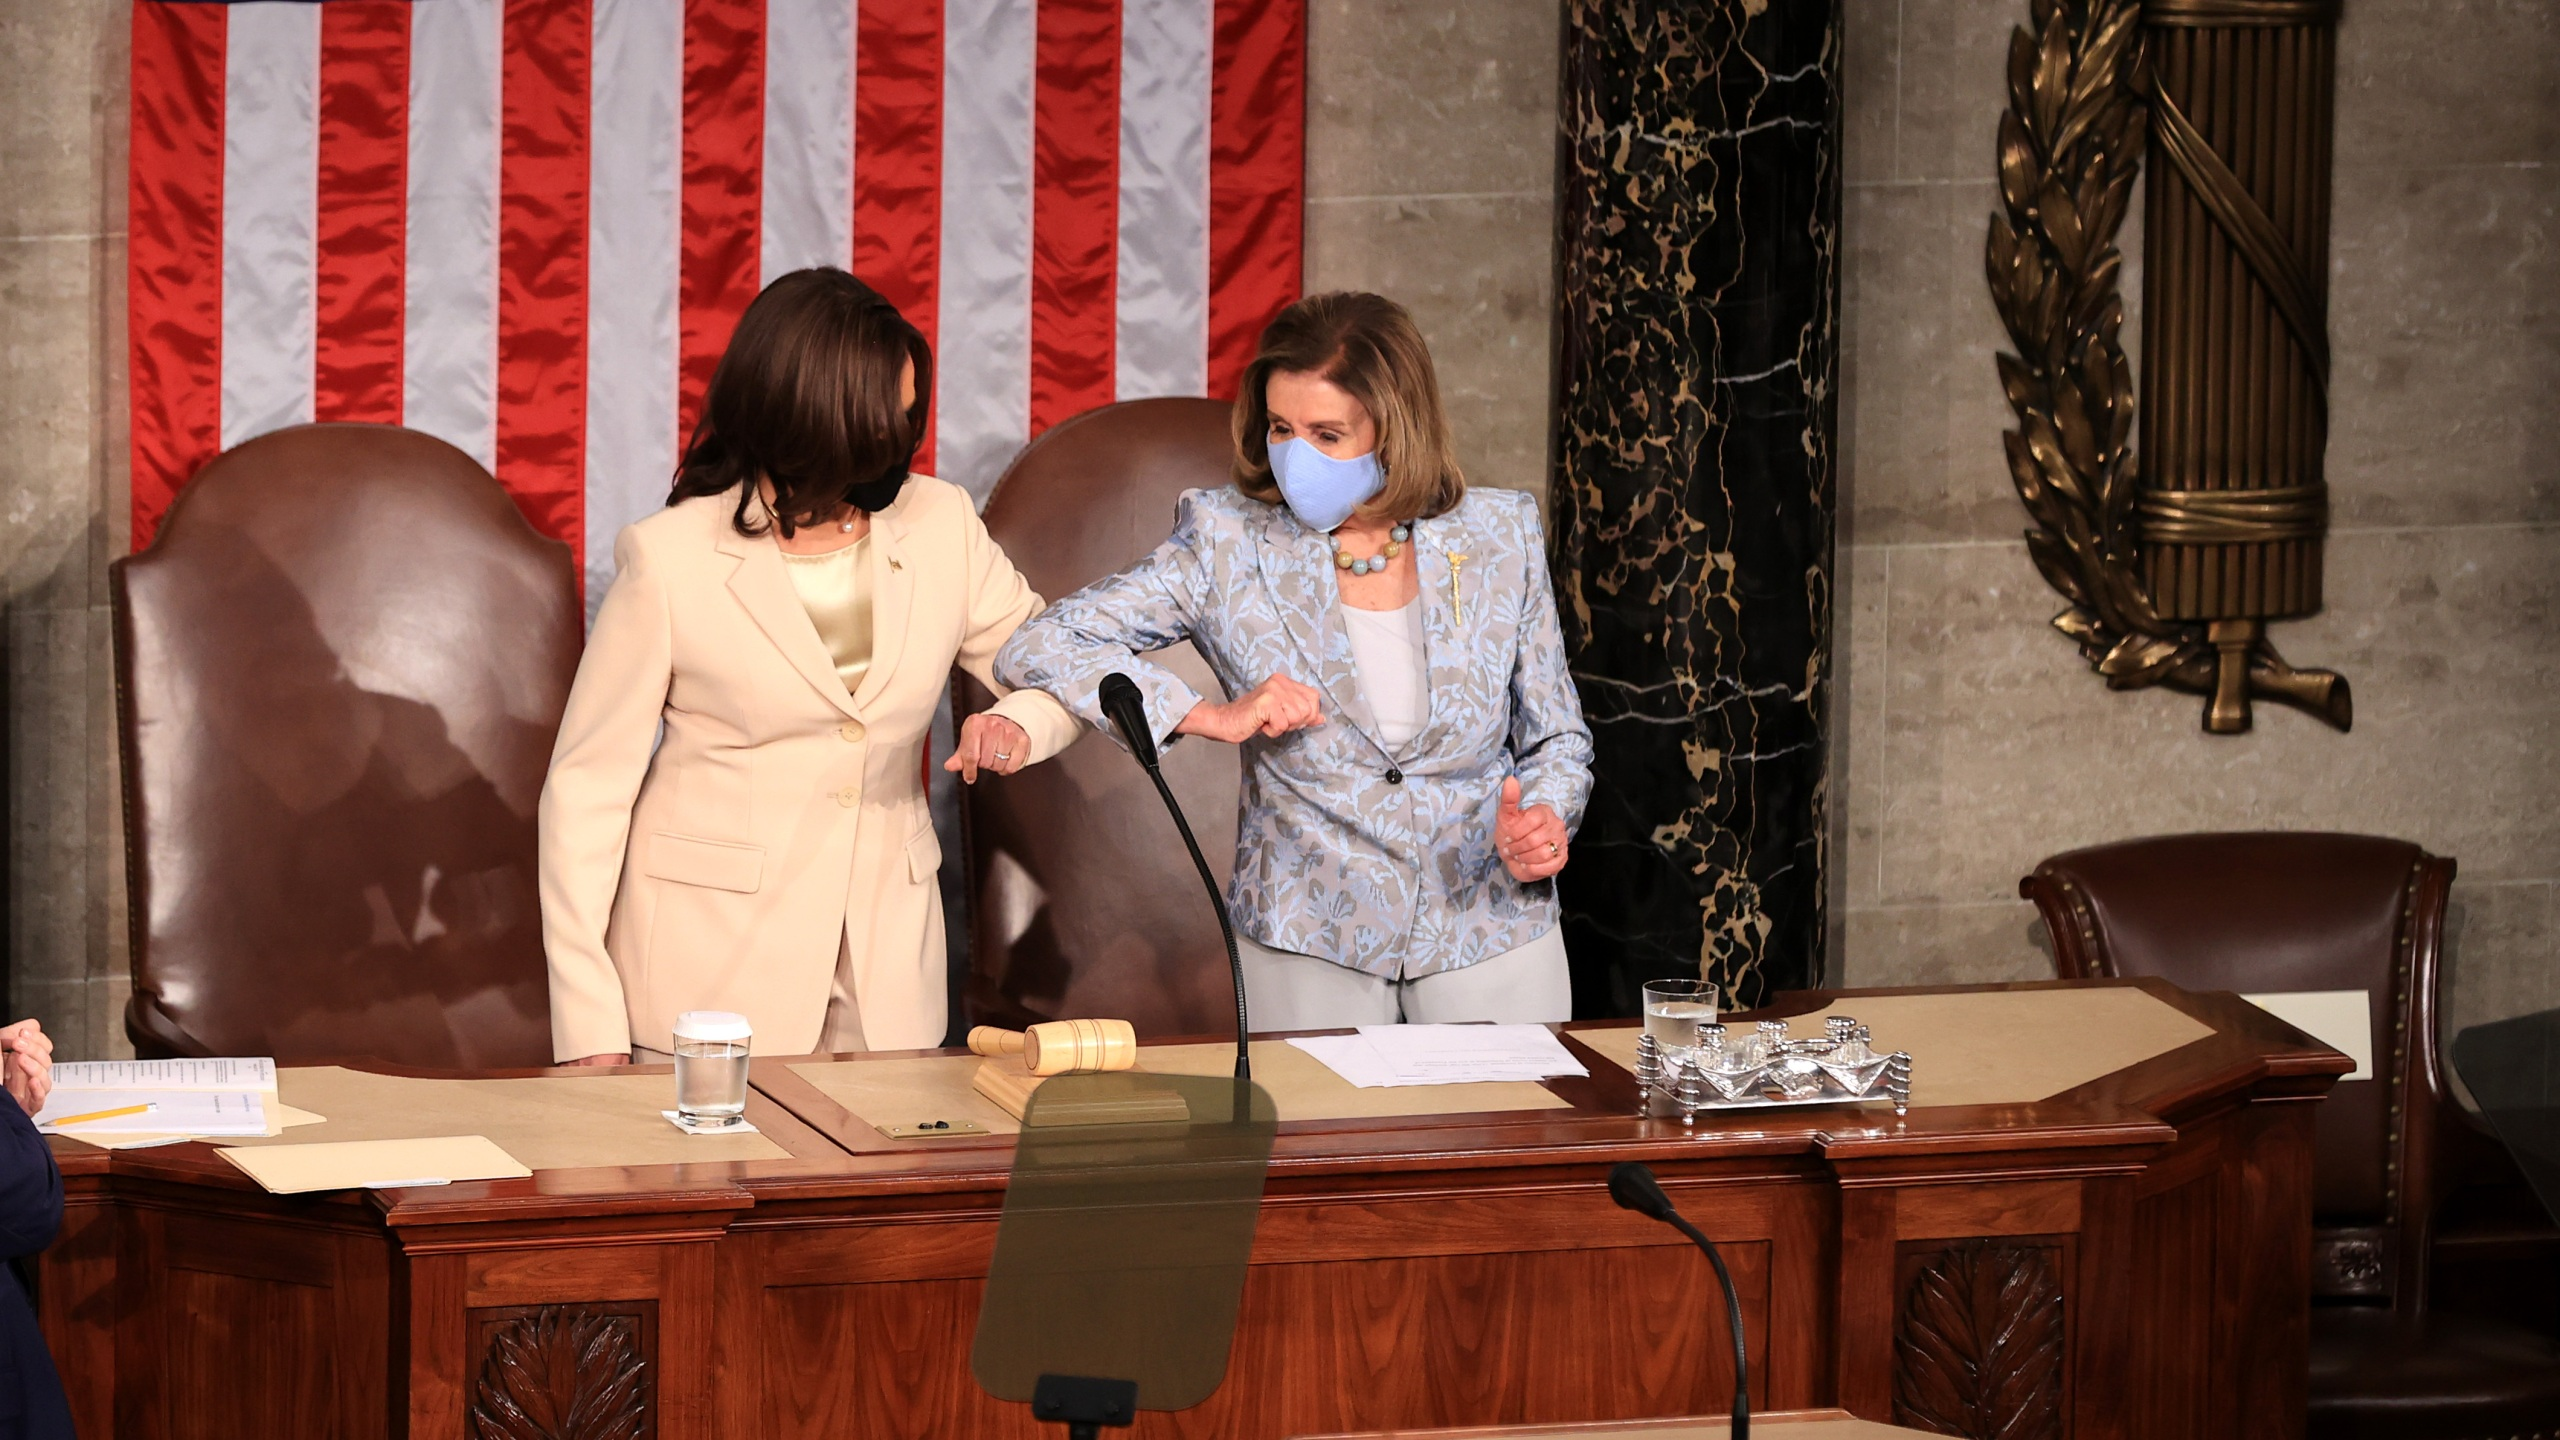 Vice President Kamala Harris and Speaker of the House Nancy Pelosi (D-CA) greet each other before U.S. President Joe Biden addresses a joint session of congress in the House chamber of the U.S. Capitol on April 28, 2021, in Washington, DC. (Chip Somodevilla/Getty Images)